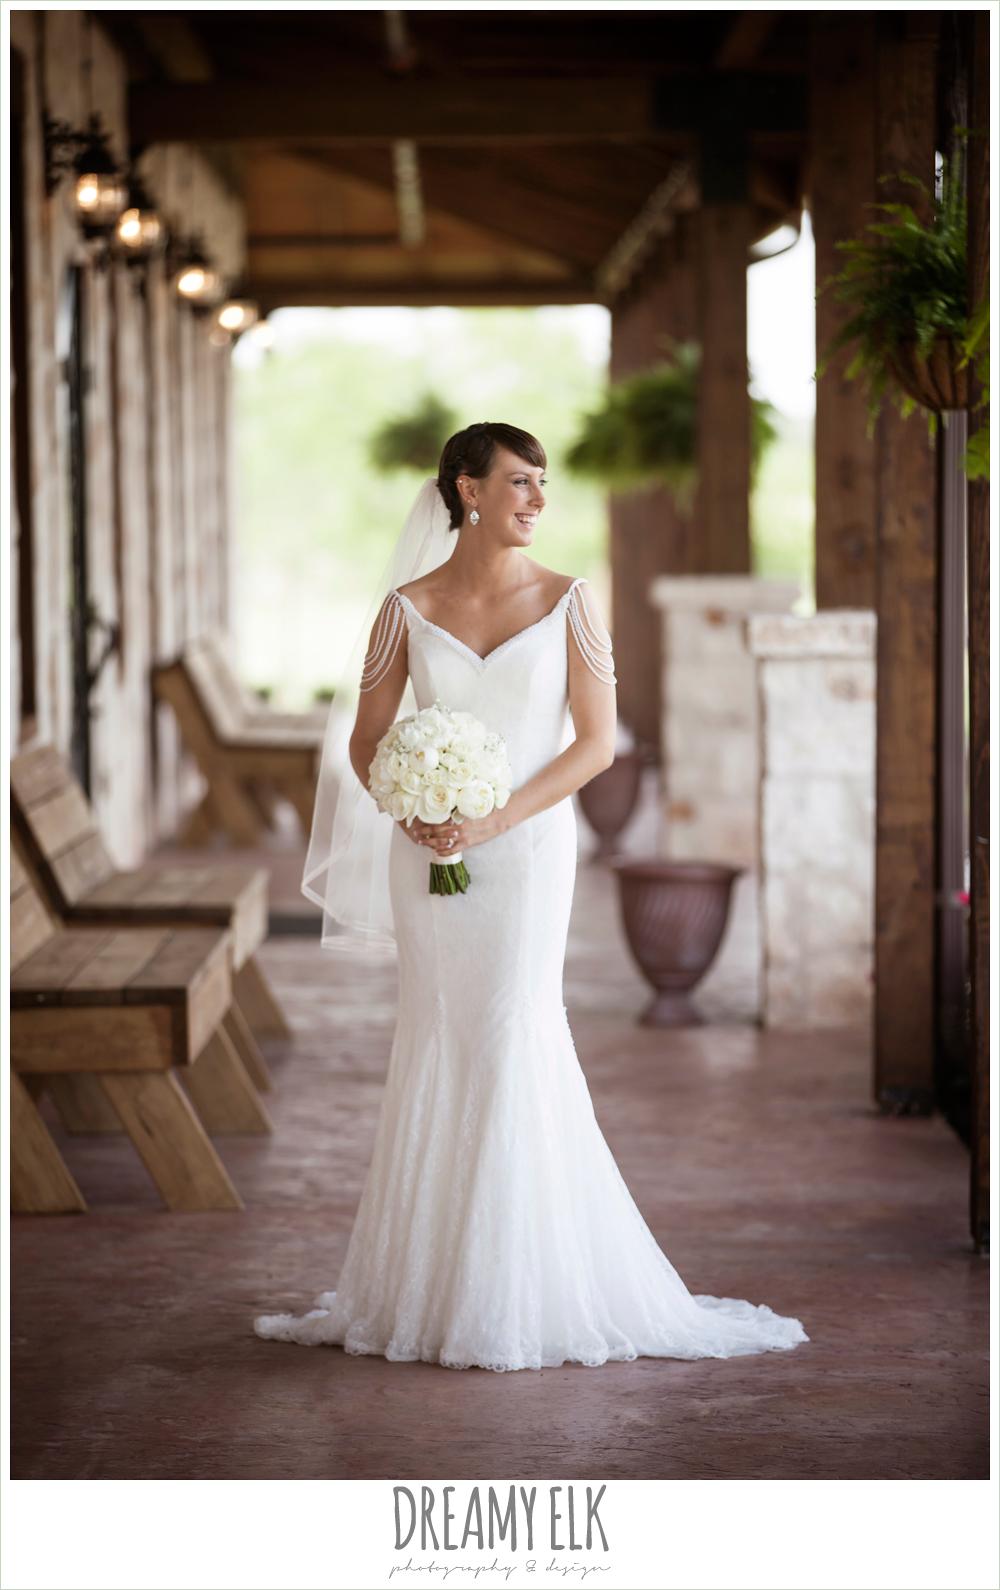 outdoor bridal portrait on porch, pearl draped sleeve lace wedding dress, white wedding bouquet, pecan springs, houston, texas, photo {dreamy elk photography and design}